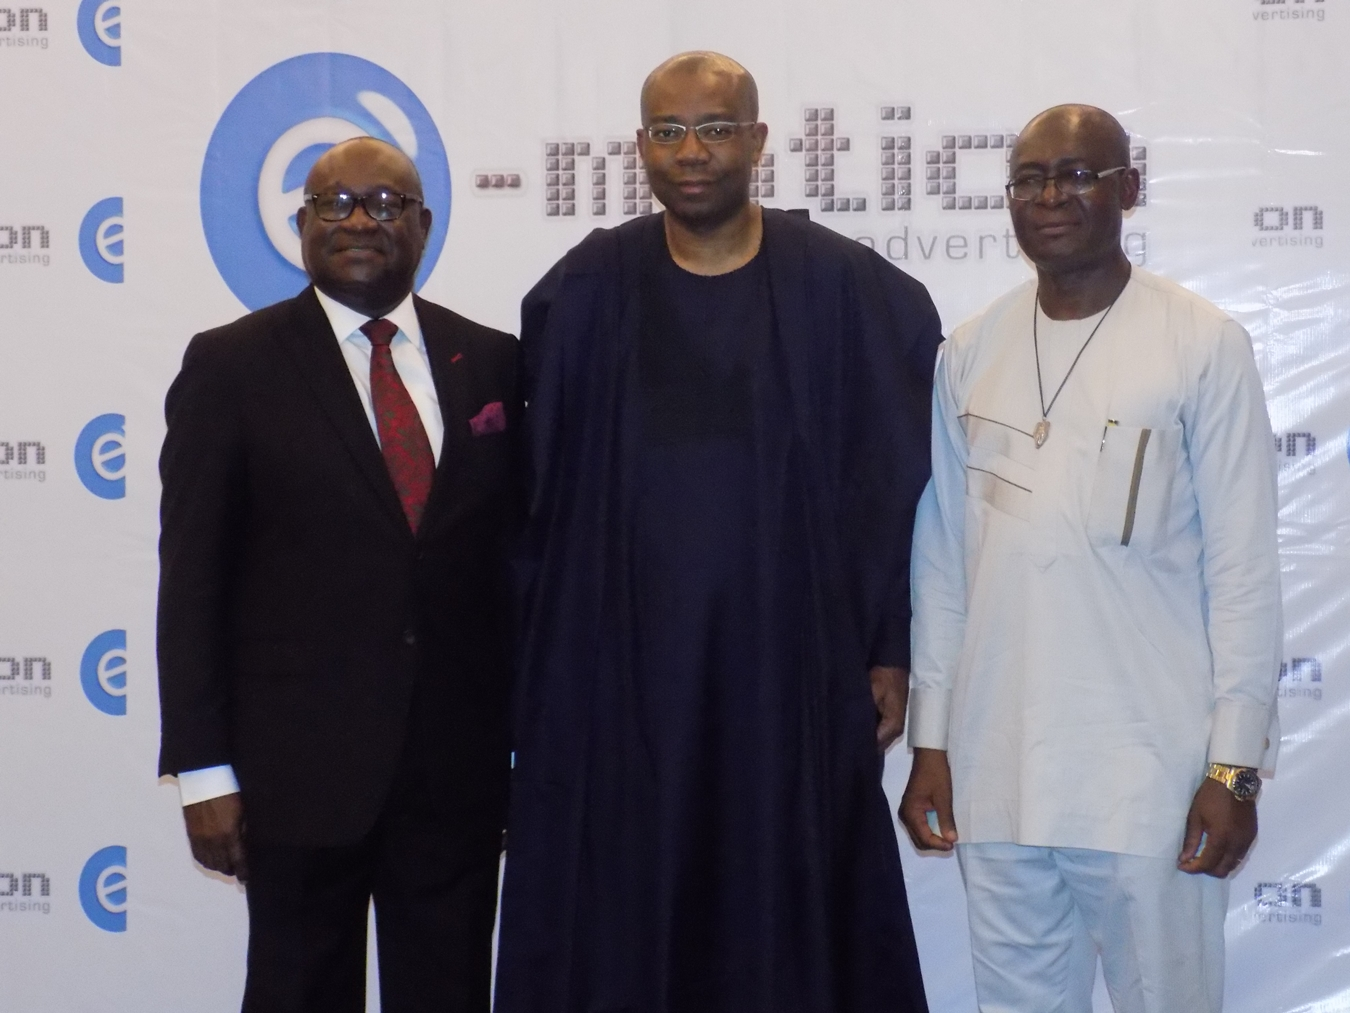 APCON CHAIRMAN MR UDEME UFORT, PRESIDENT NSE MR AIG-IMOUKHEDE & CEO E-MOTION ADVERTISING MR PAUL ONYIA